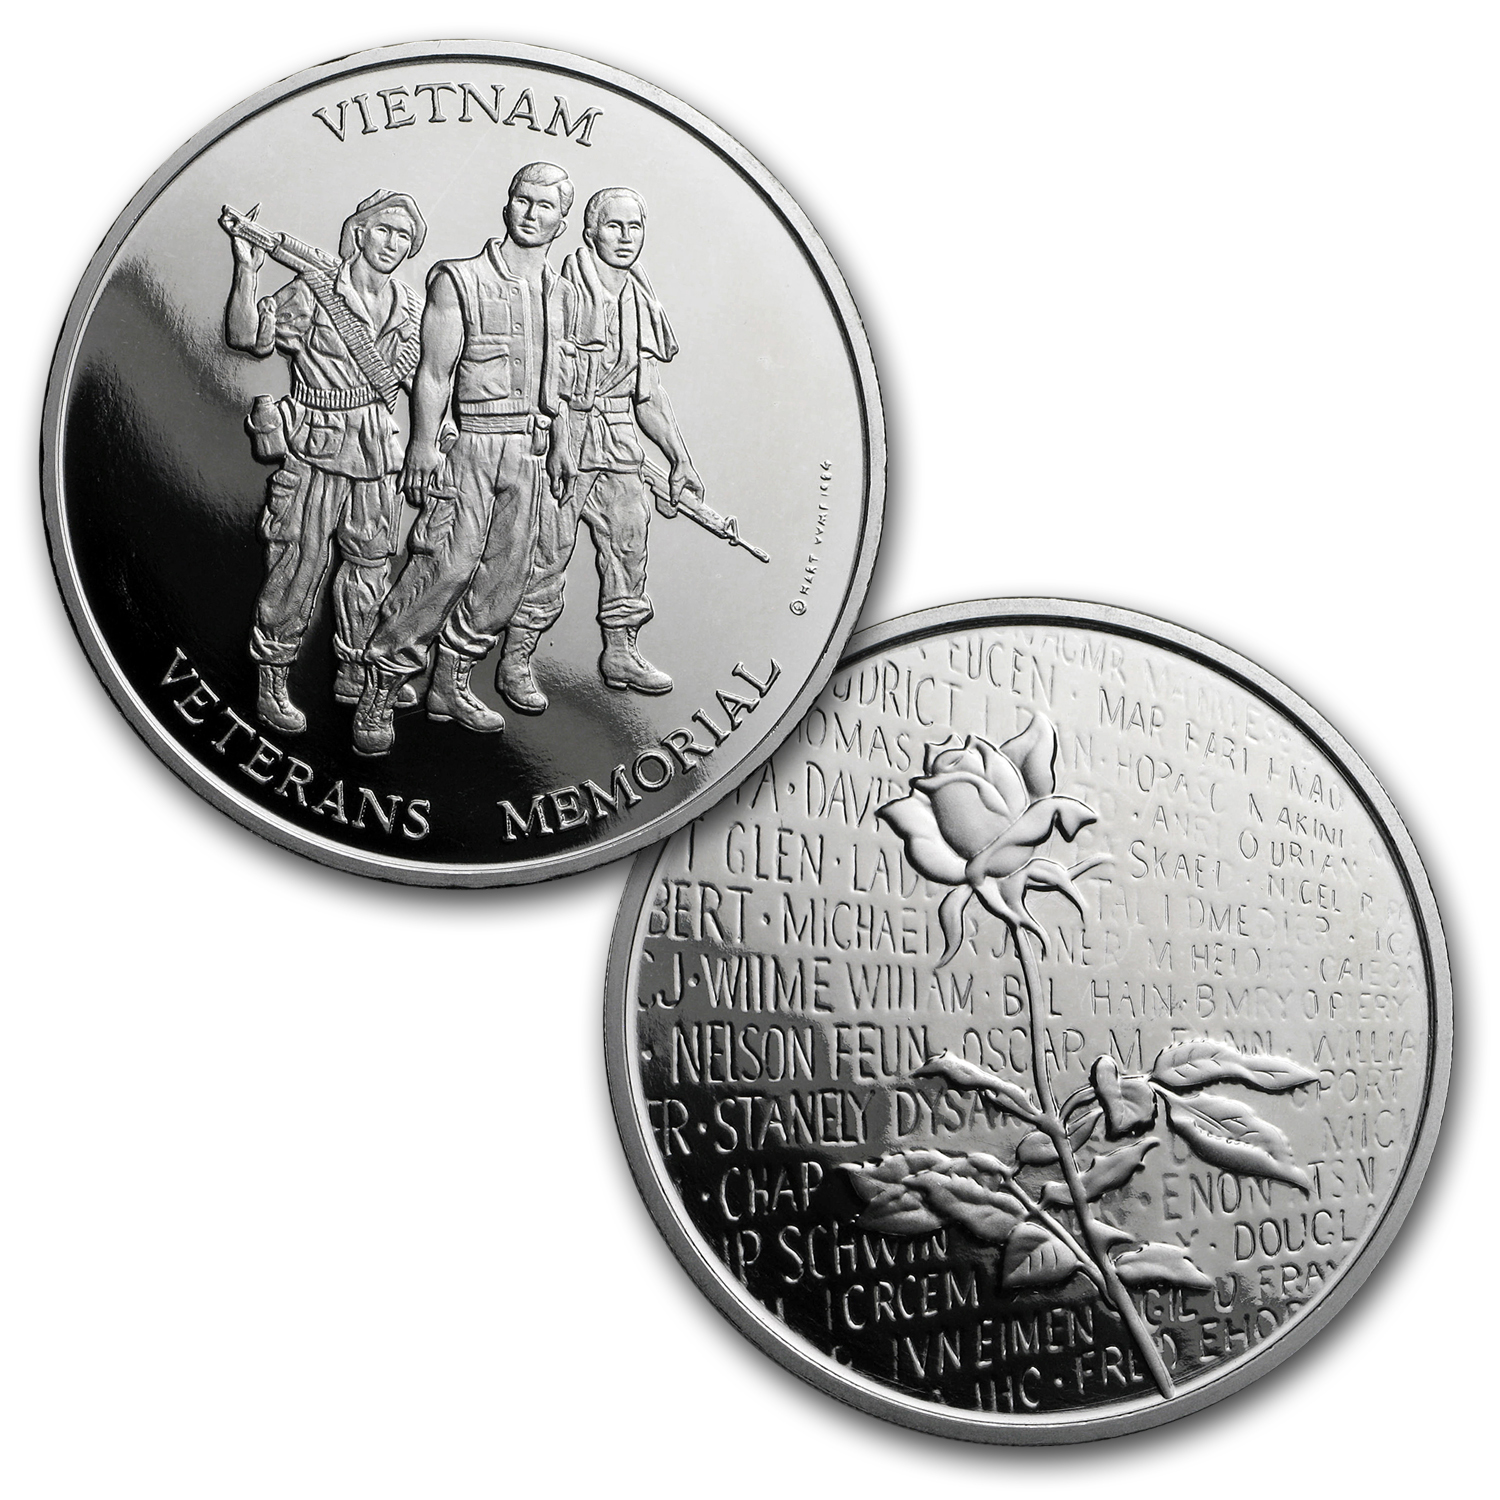 4 Metals Set - Vietnam Veterans Memorial Set (Au,Ag,Pt,Pd)